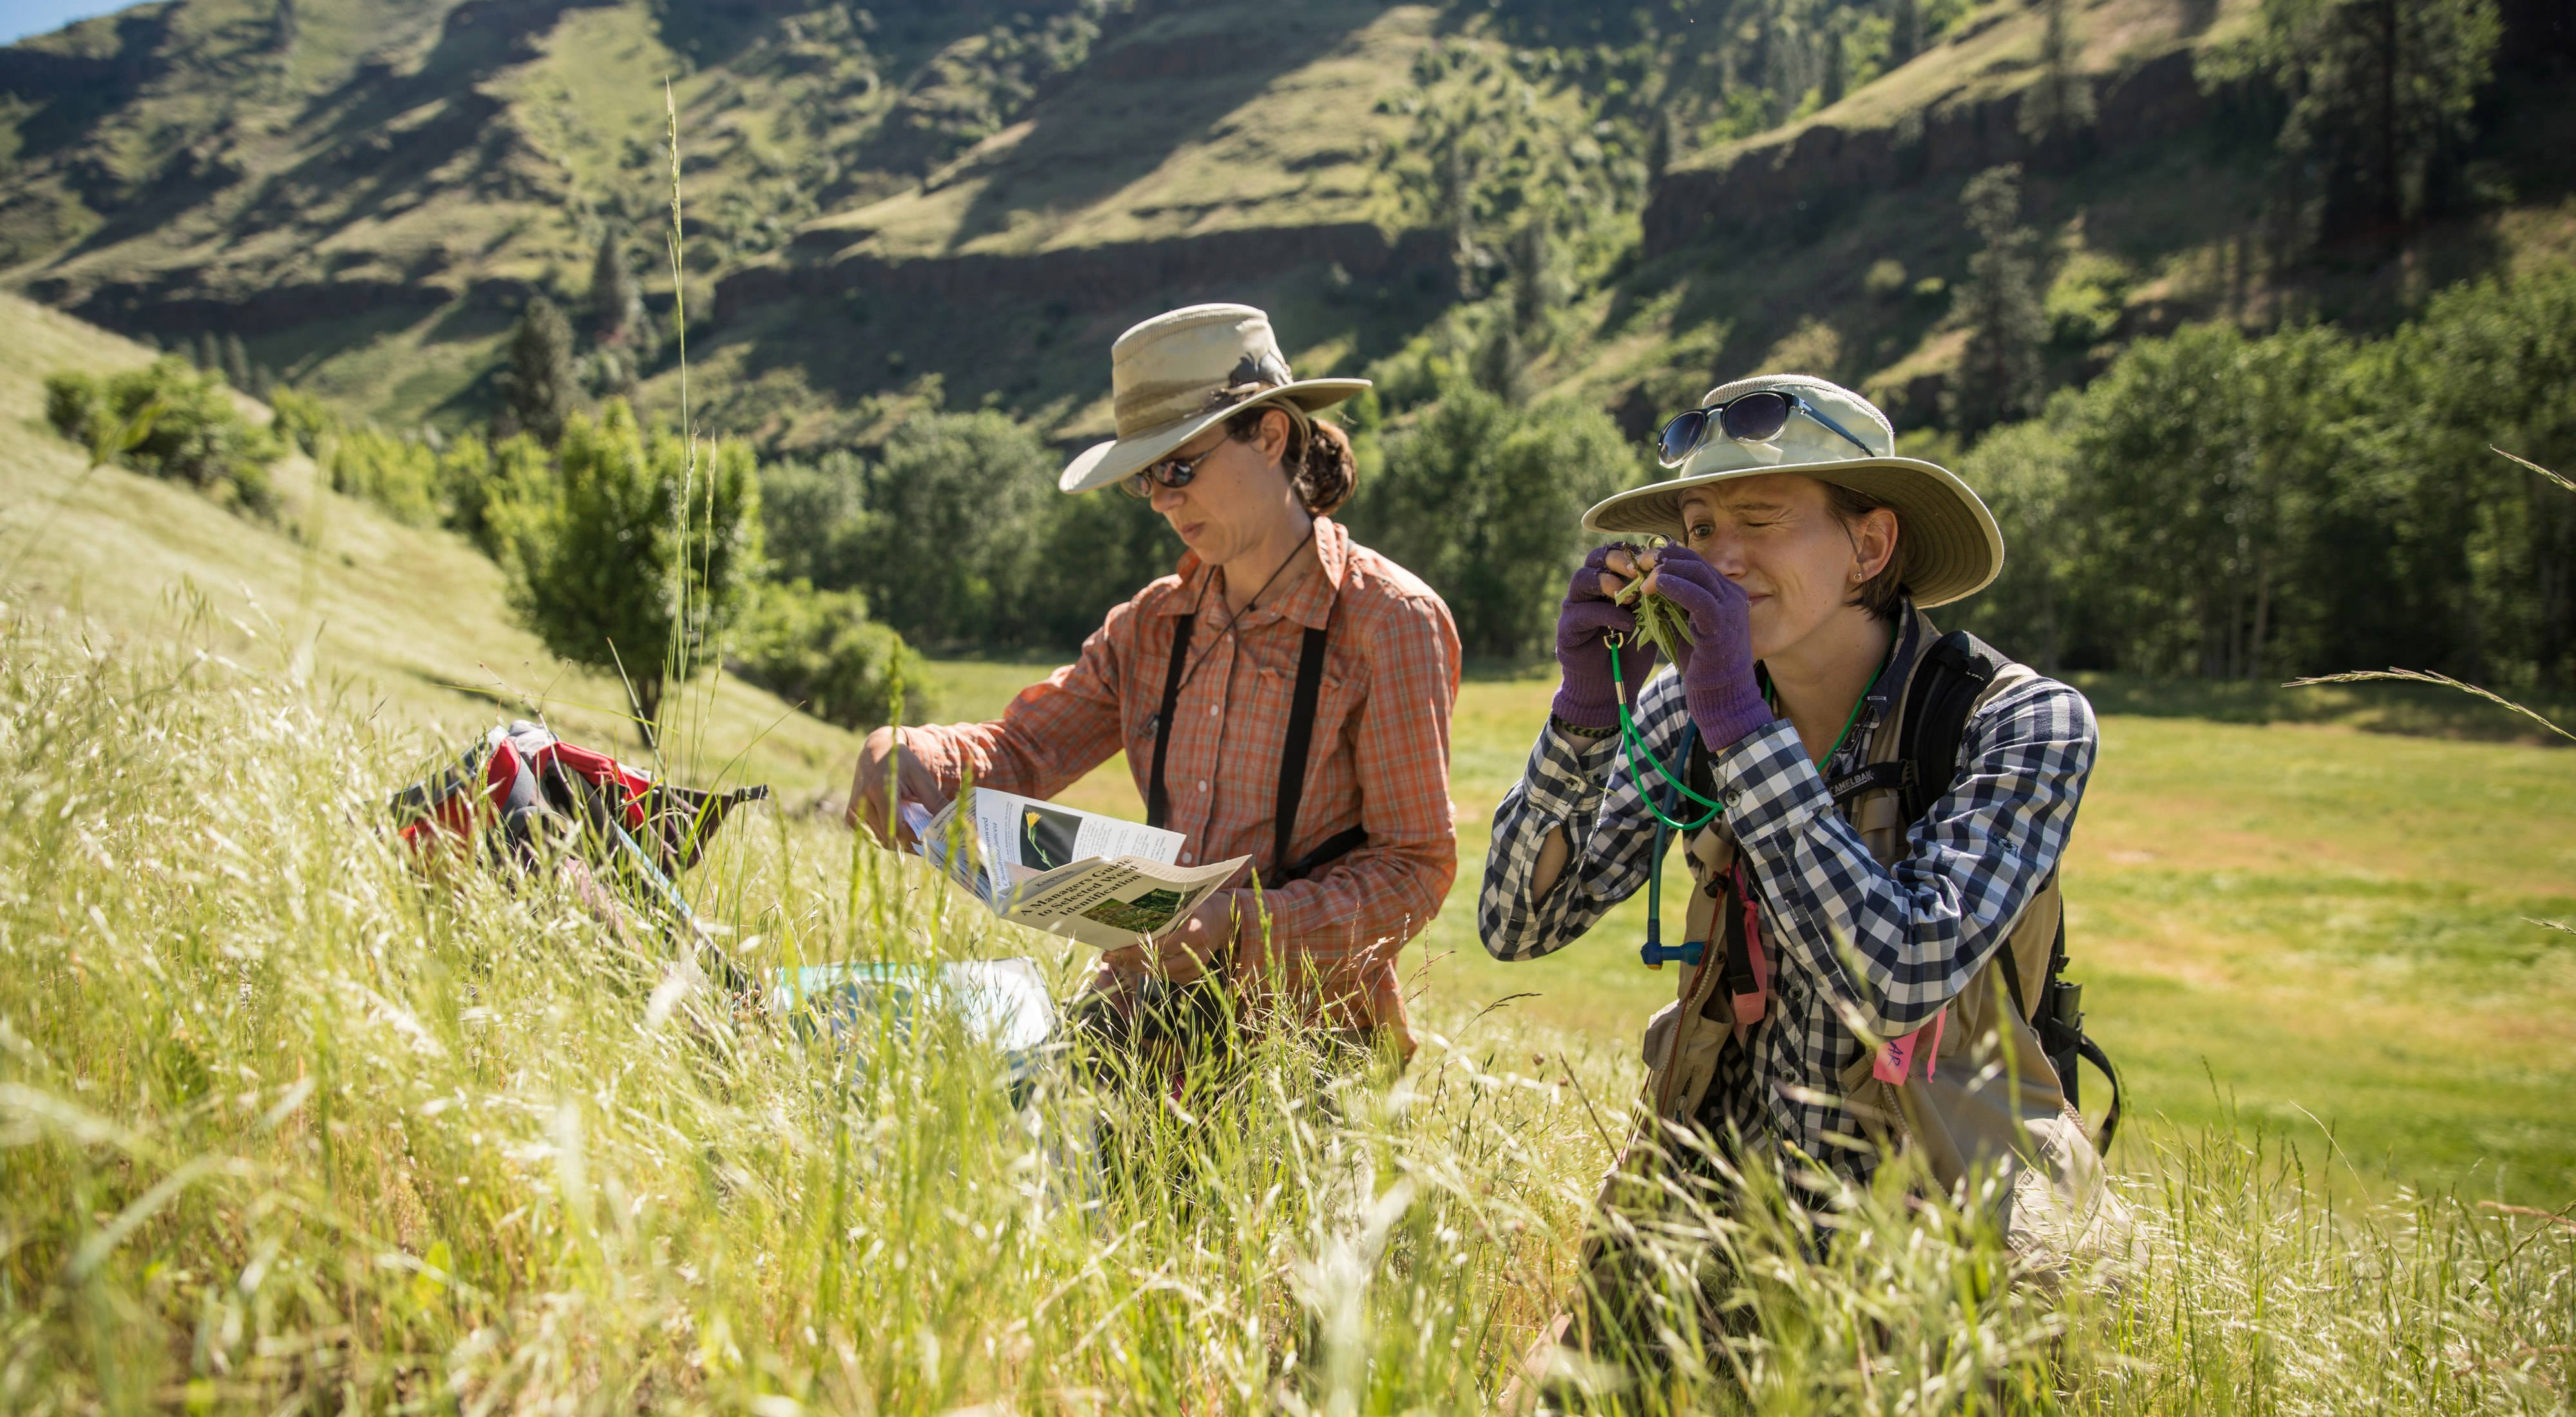 TNC scientists Heidi Schmalz (left) and Allison Rossman lead a group of volunteers and researchers as they identify invasive weeds on the Zumwalt Prairie Preserve, Oregon.